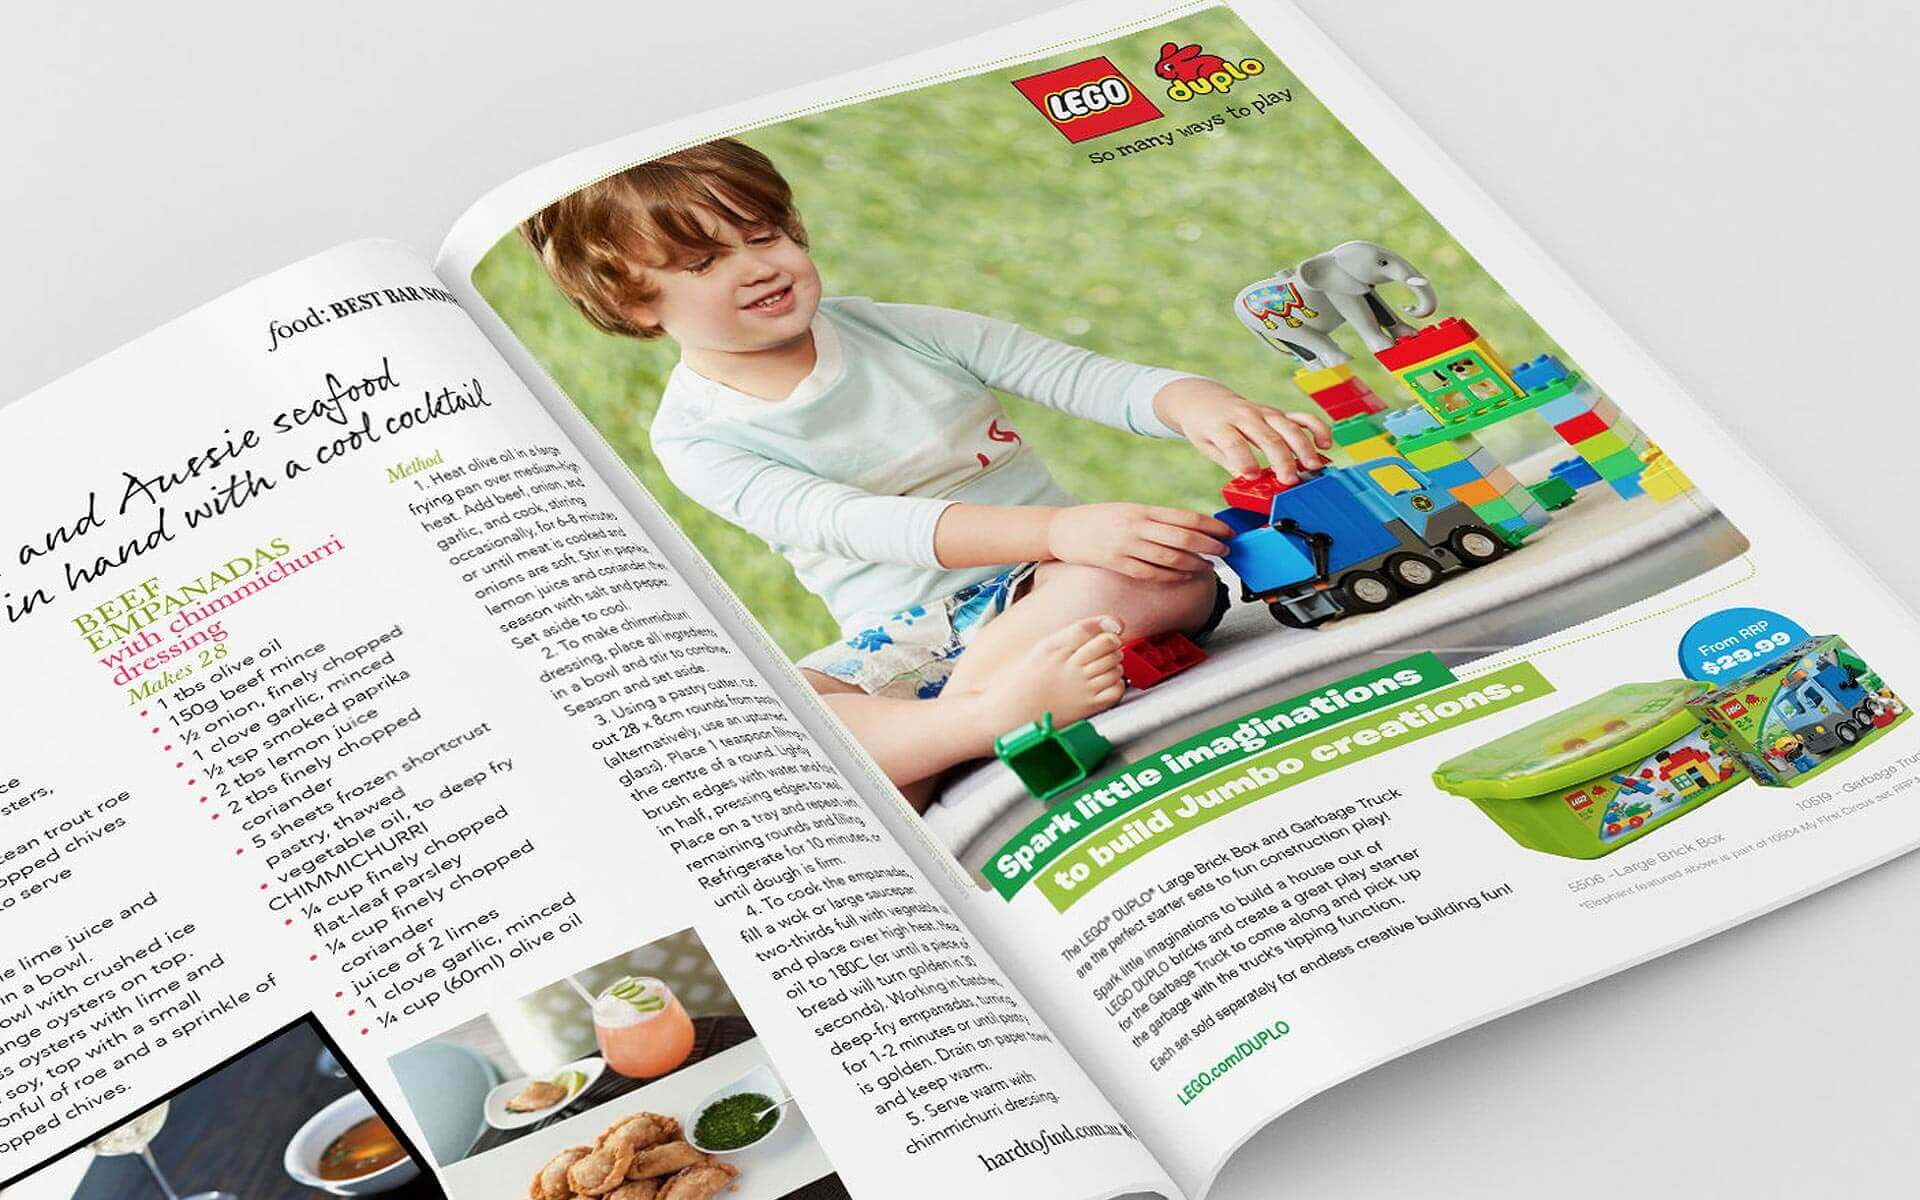 LEGO Duplo 'Spark Little Imaginations, to Build Big Creations' magazine ad.